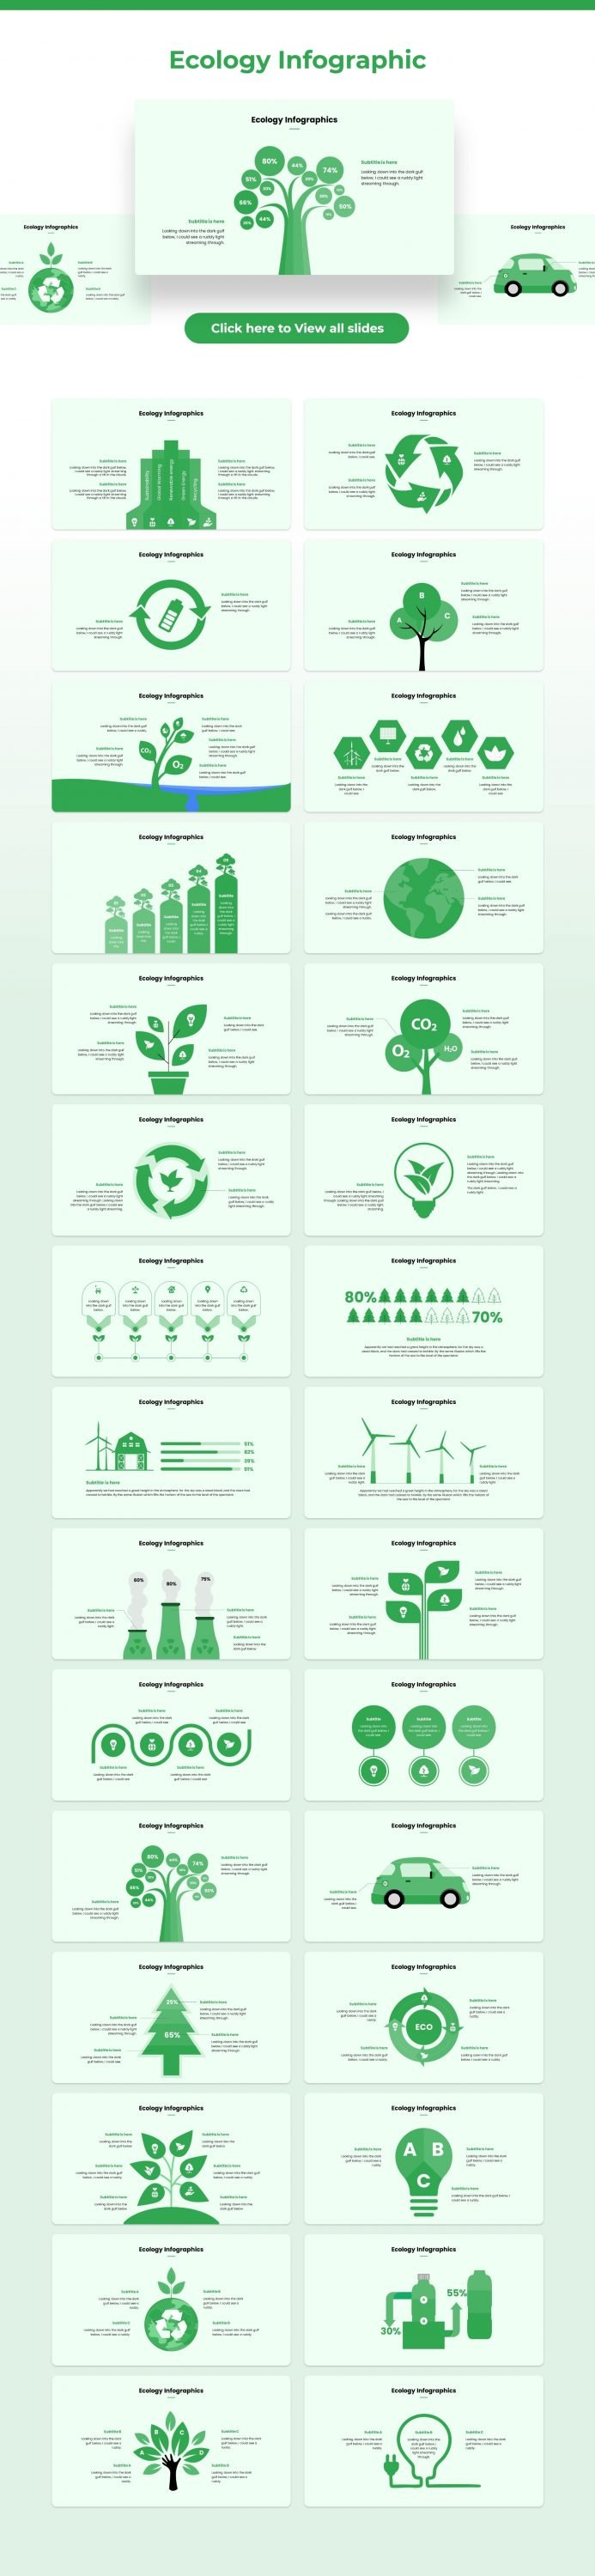 There is ecological infographic in green color with many elements.